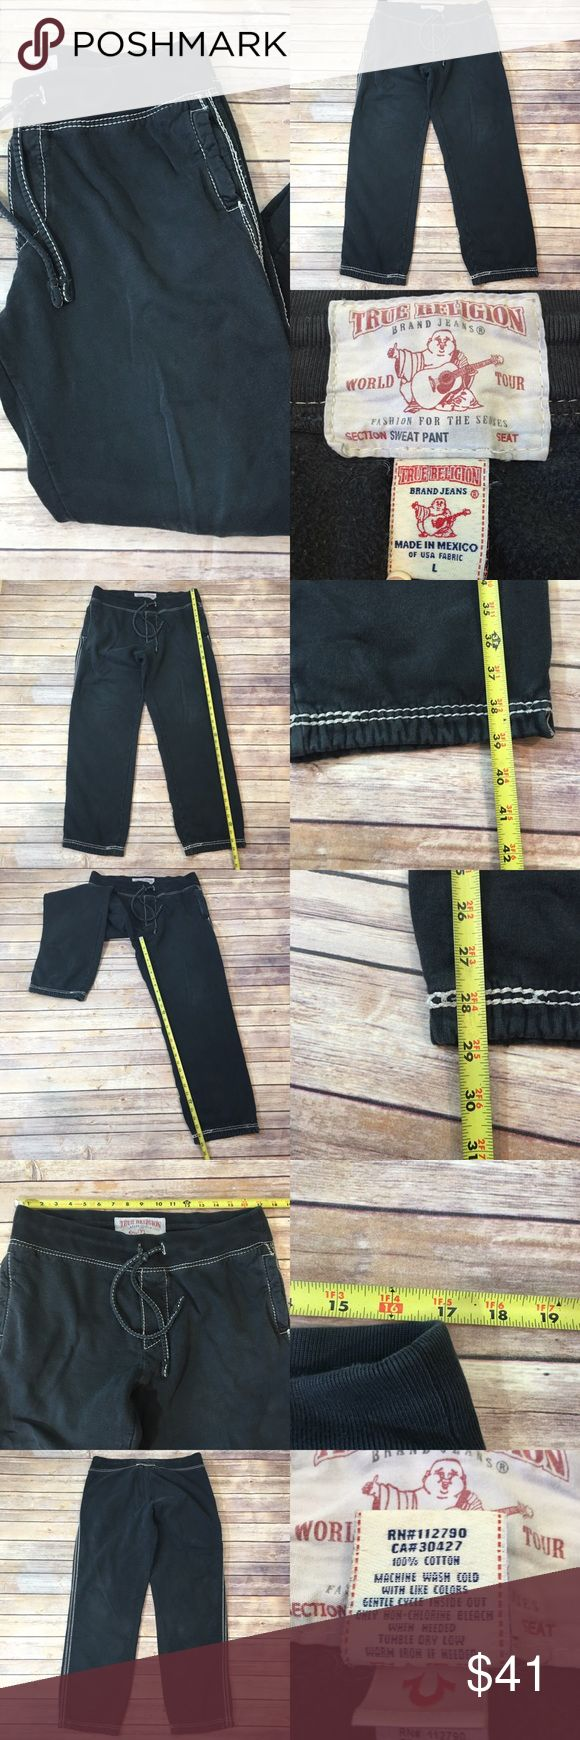 🆕Sz Large True Religion Men's Sweatpants Gray Measurements are in photos. Normal wash wear, ankle ties missing, no holes or stains. C1  Ask about a bundle discount on all items that are not ⏰Flash Sale items! I ship everyday. I always package safely. If I run out of boxes, I will use priority bags over a polymailer bag. If you prefer to only receive this great item in a box, please let me know! Thanks! True Religion Pants Sweatpants & Joggers